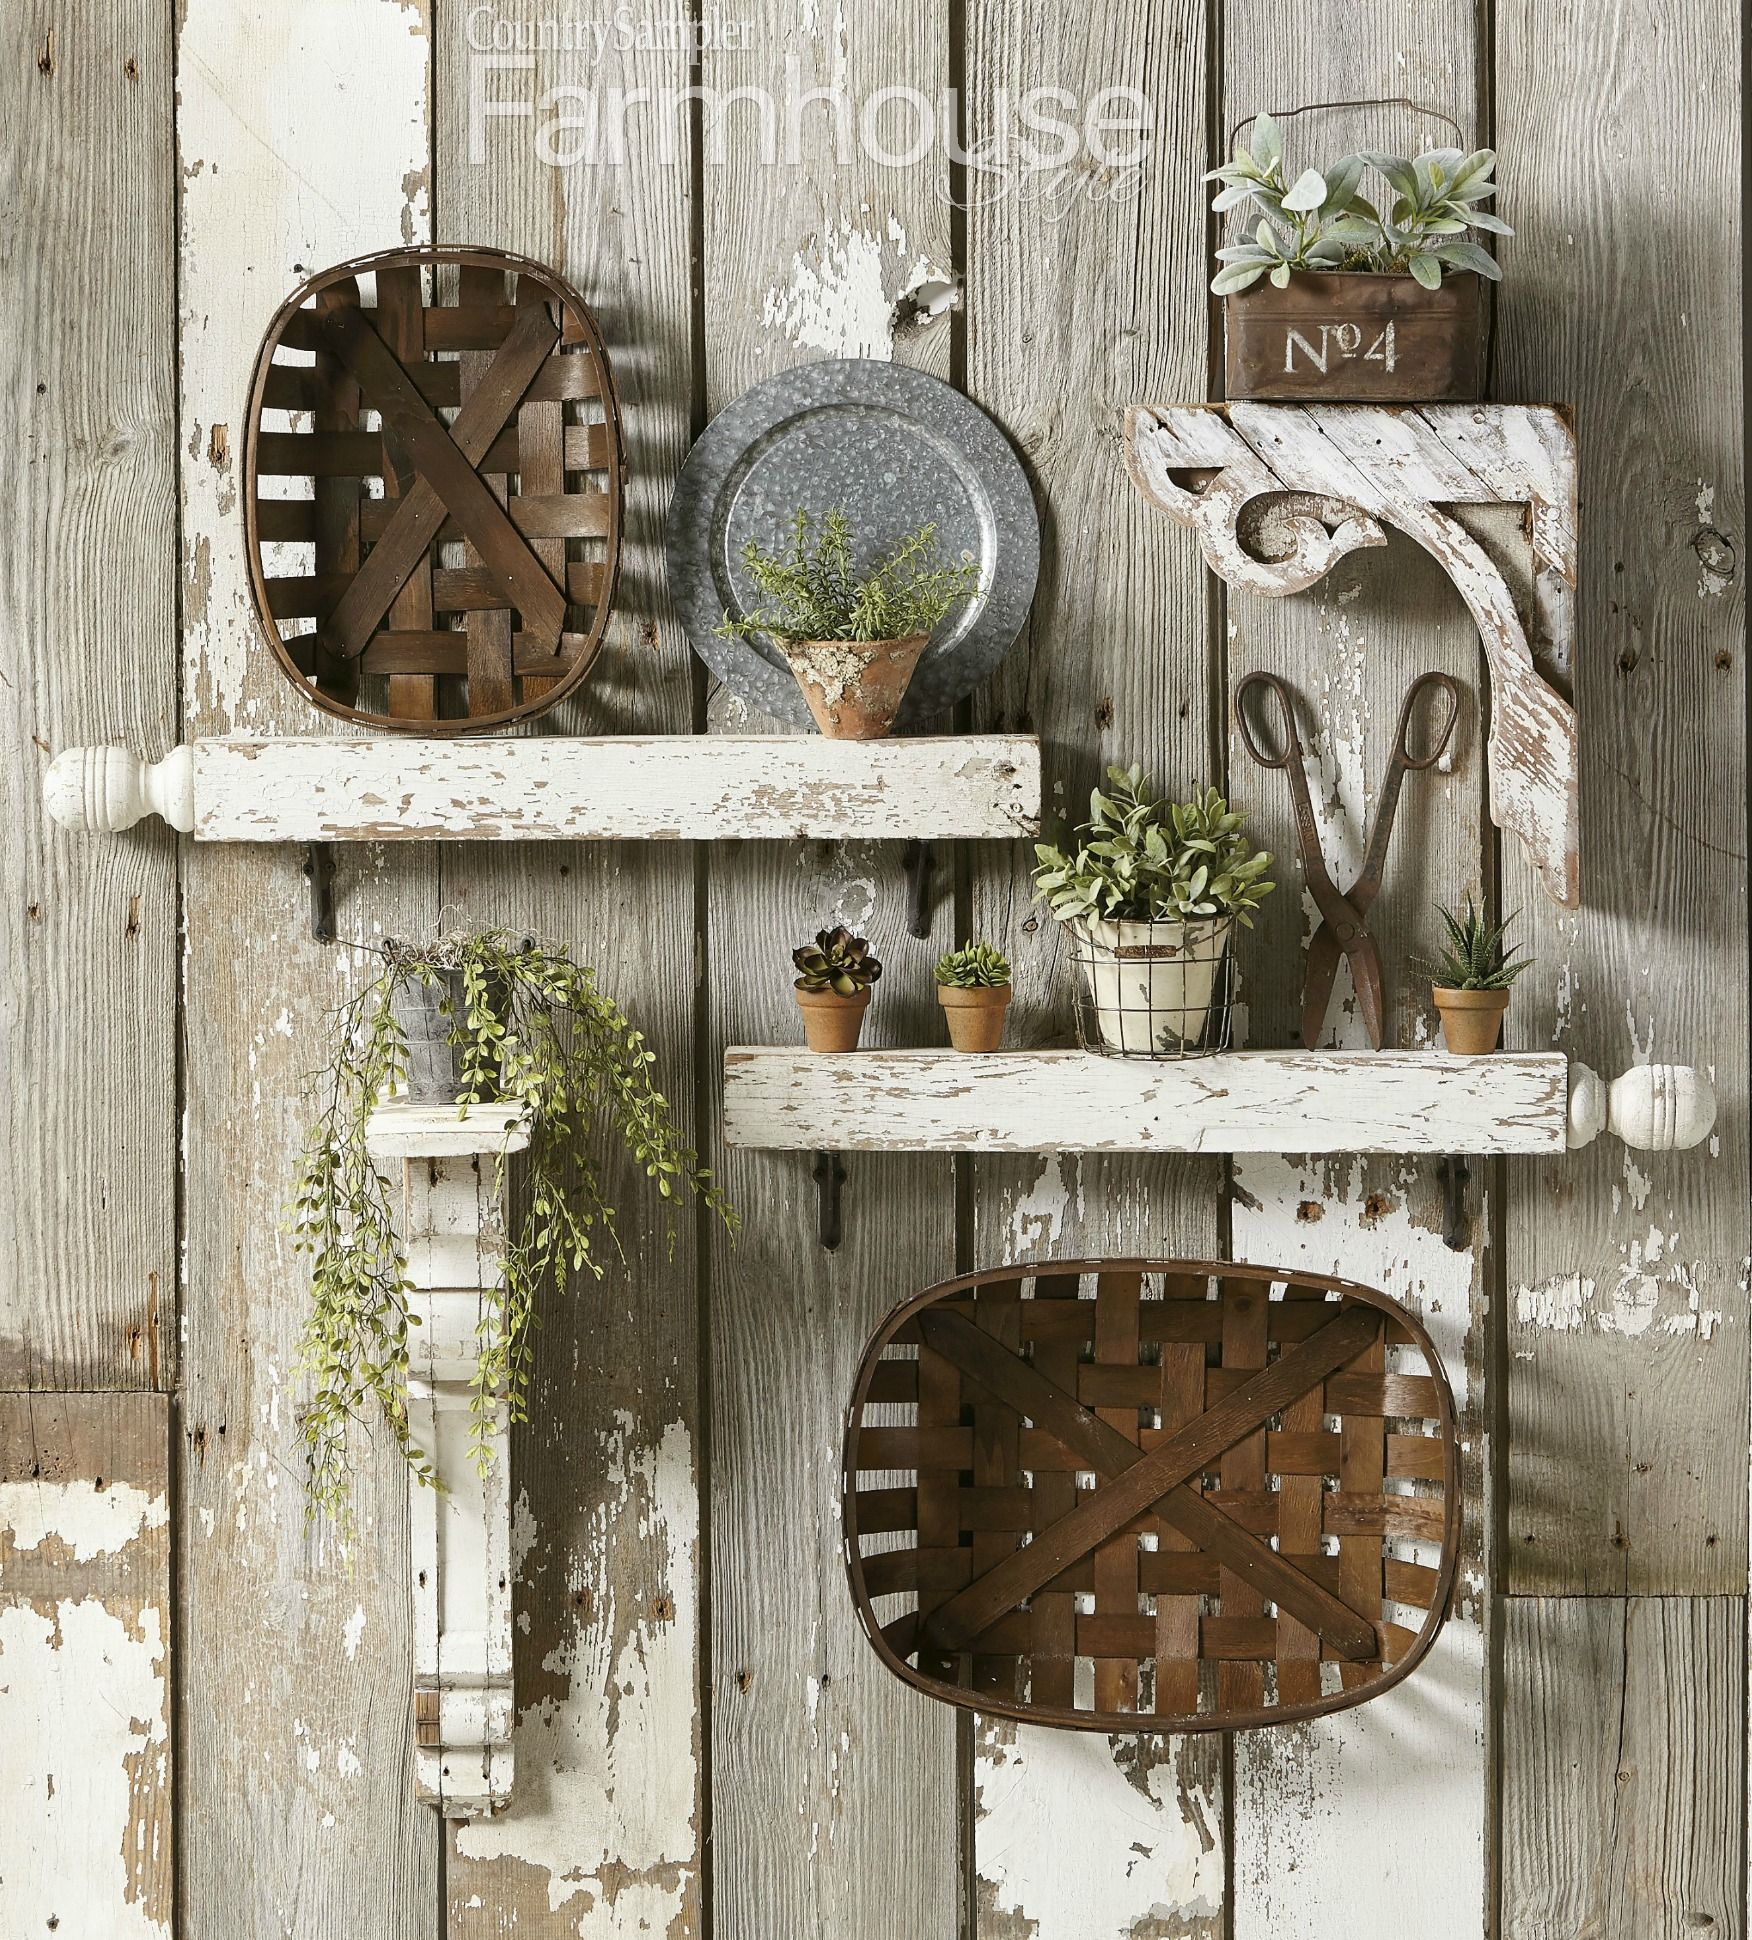 Mix Vertical And Horizontal Pieces Including Architectural Salvage Country Collectibles Baskets French Country Decorating Country Wall Decor Salvaged Decor